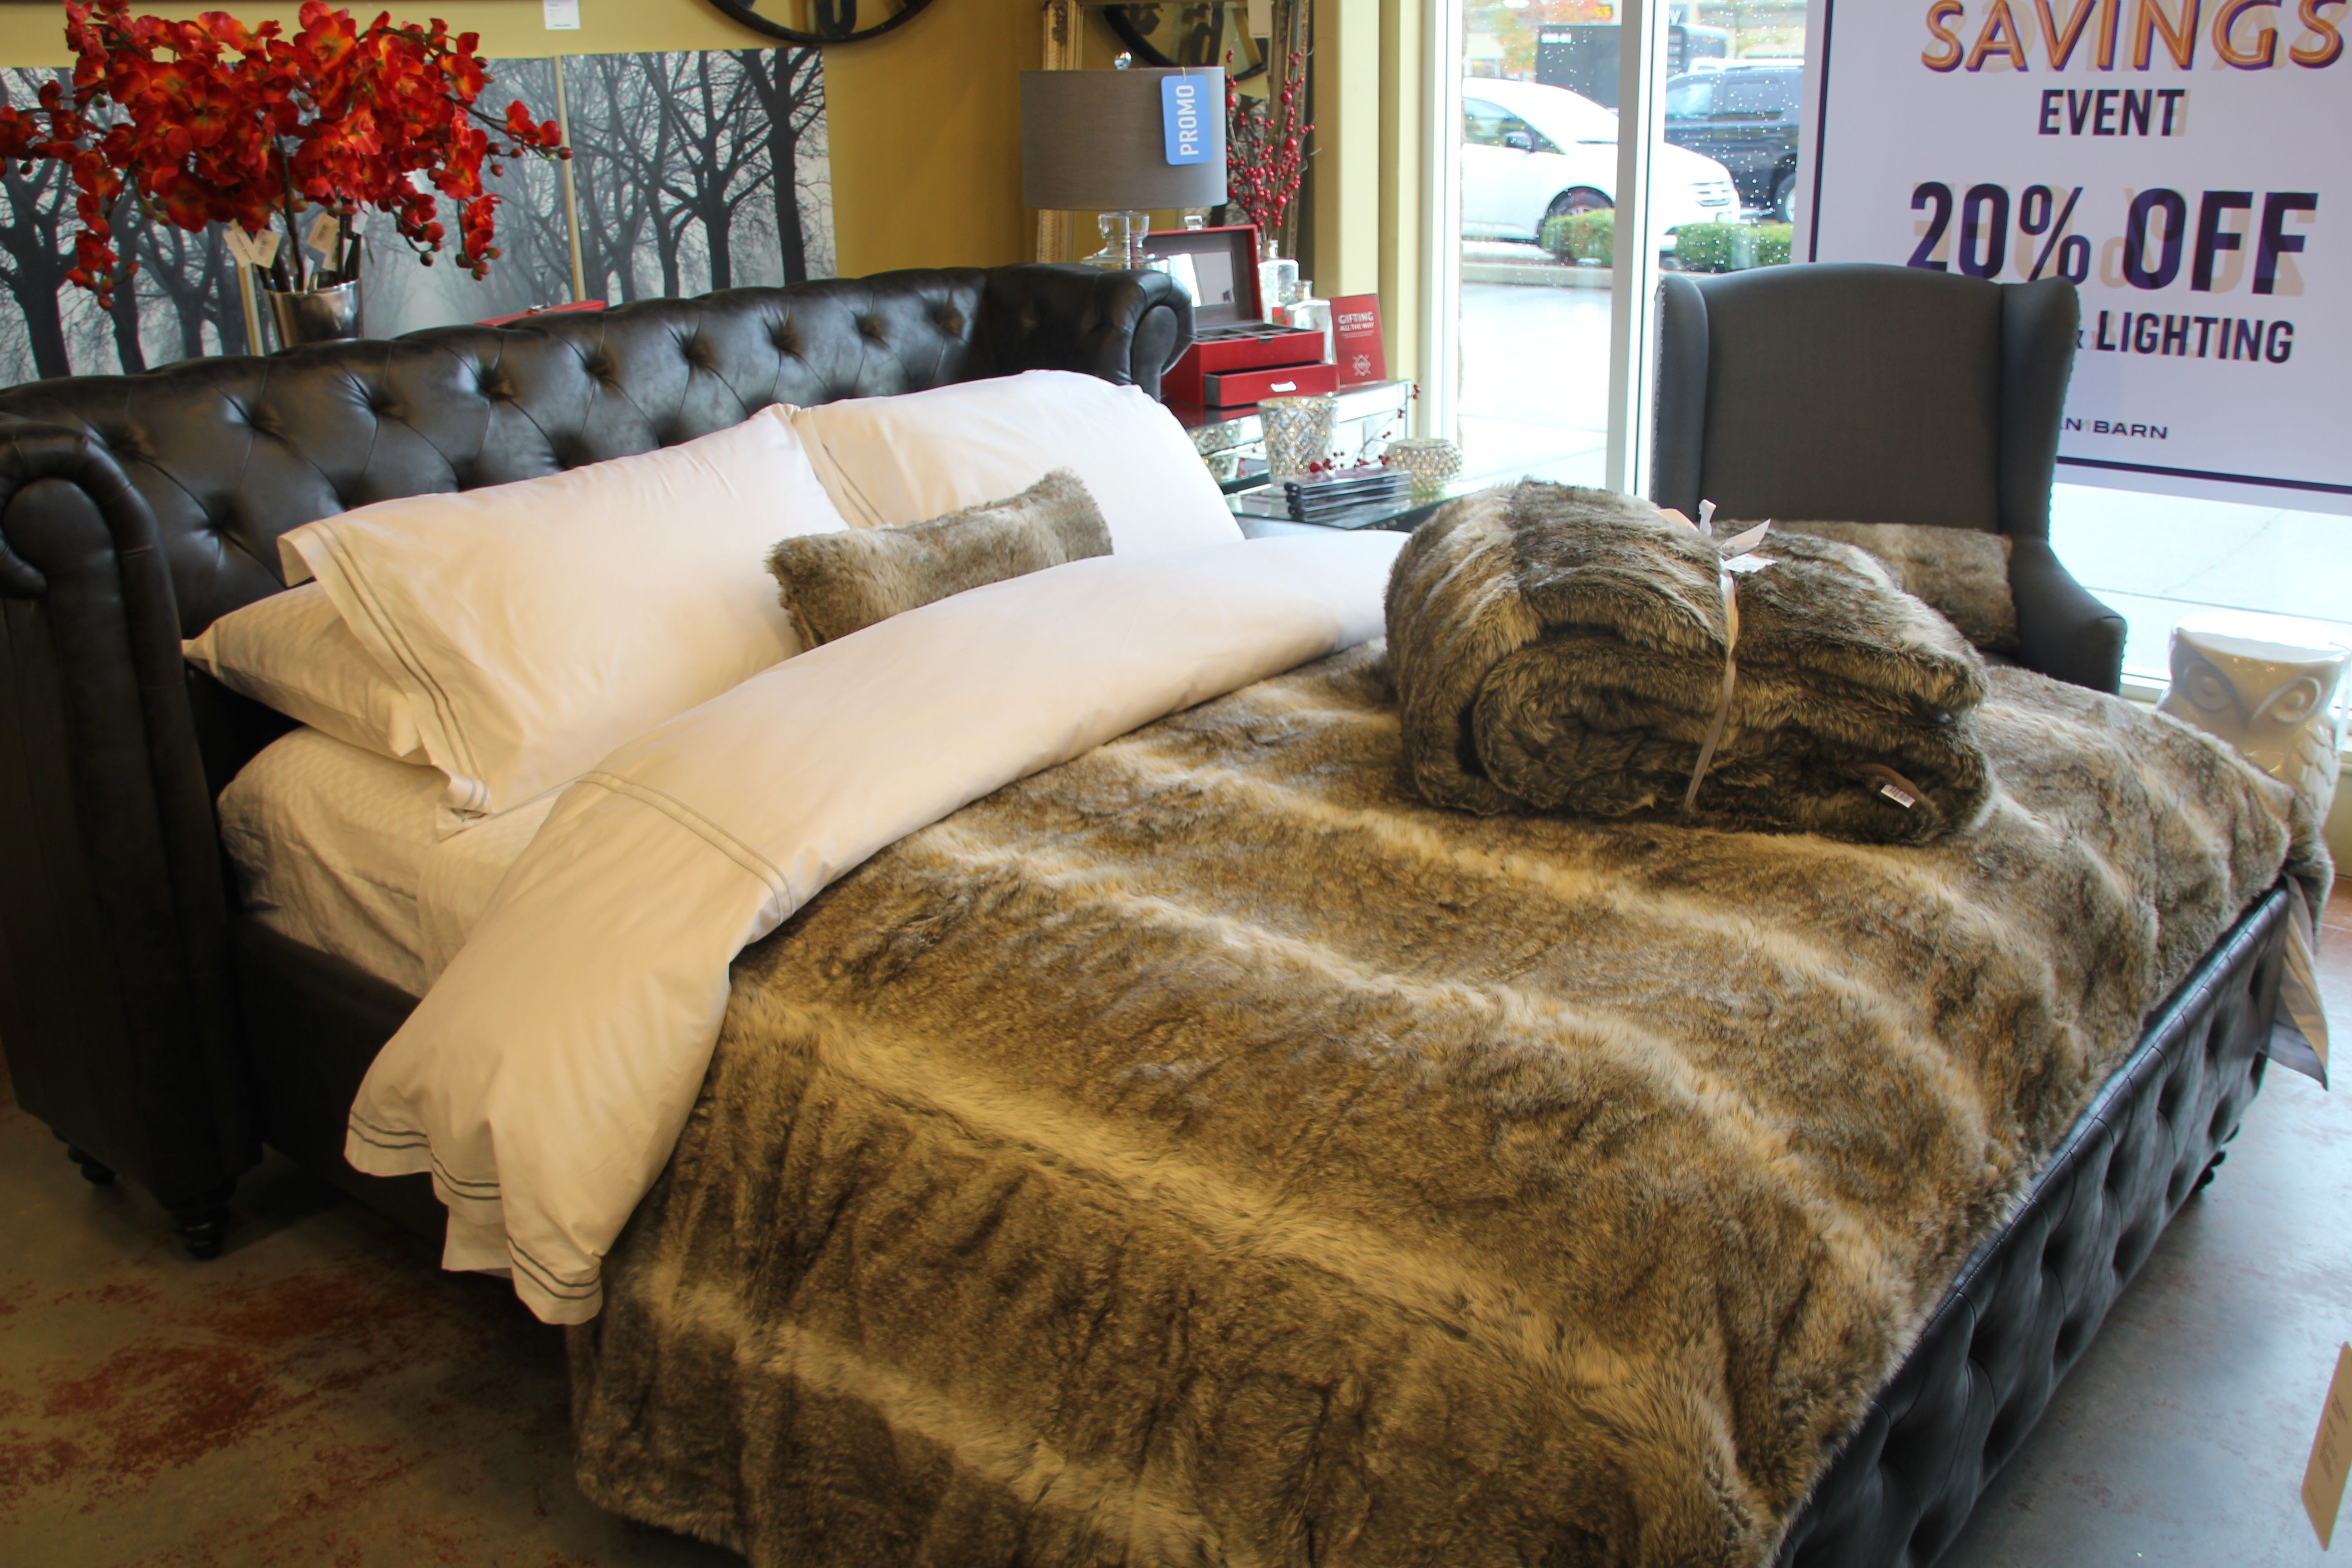 size safarina with comforter brown full class bedding velvet fur of touch sophisticated astounding sets coffee luxury king bed bedroom ideas faux images setsluxury